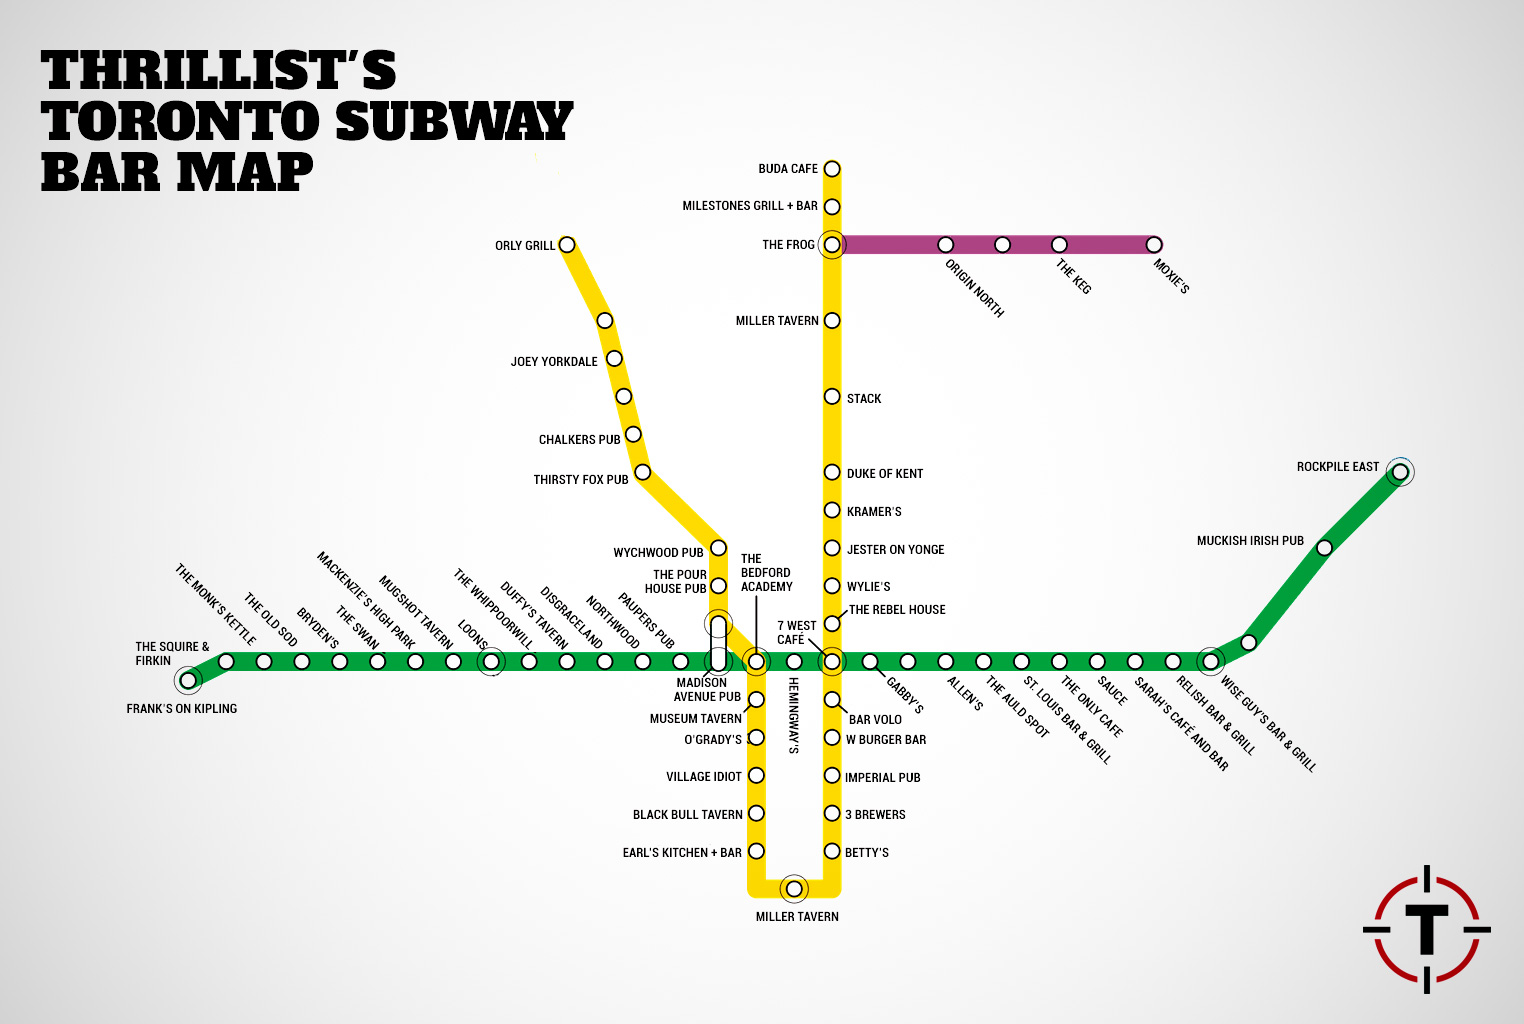 Toronto Subway Map With Bars For Every Stop Thrillist